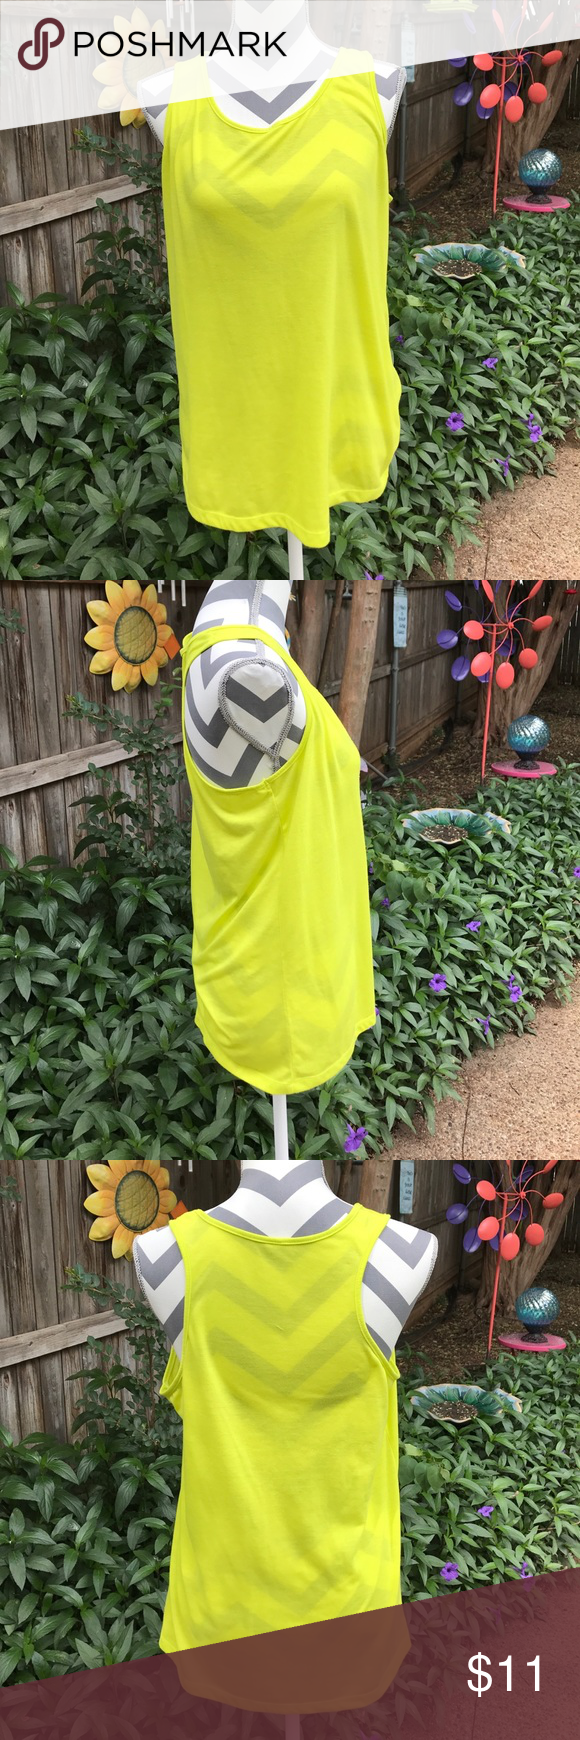 Vibrant yellow tank Beautiful worn alone, in stunning yellow, or worn under a different top!! Lots of stretch and very comfortable! New condition. No size tag, but fits like a L/XL Tops Tank Tops